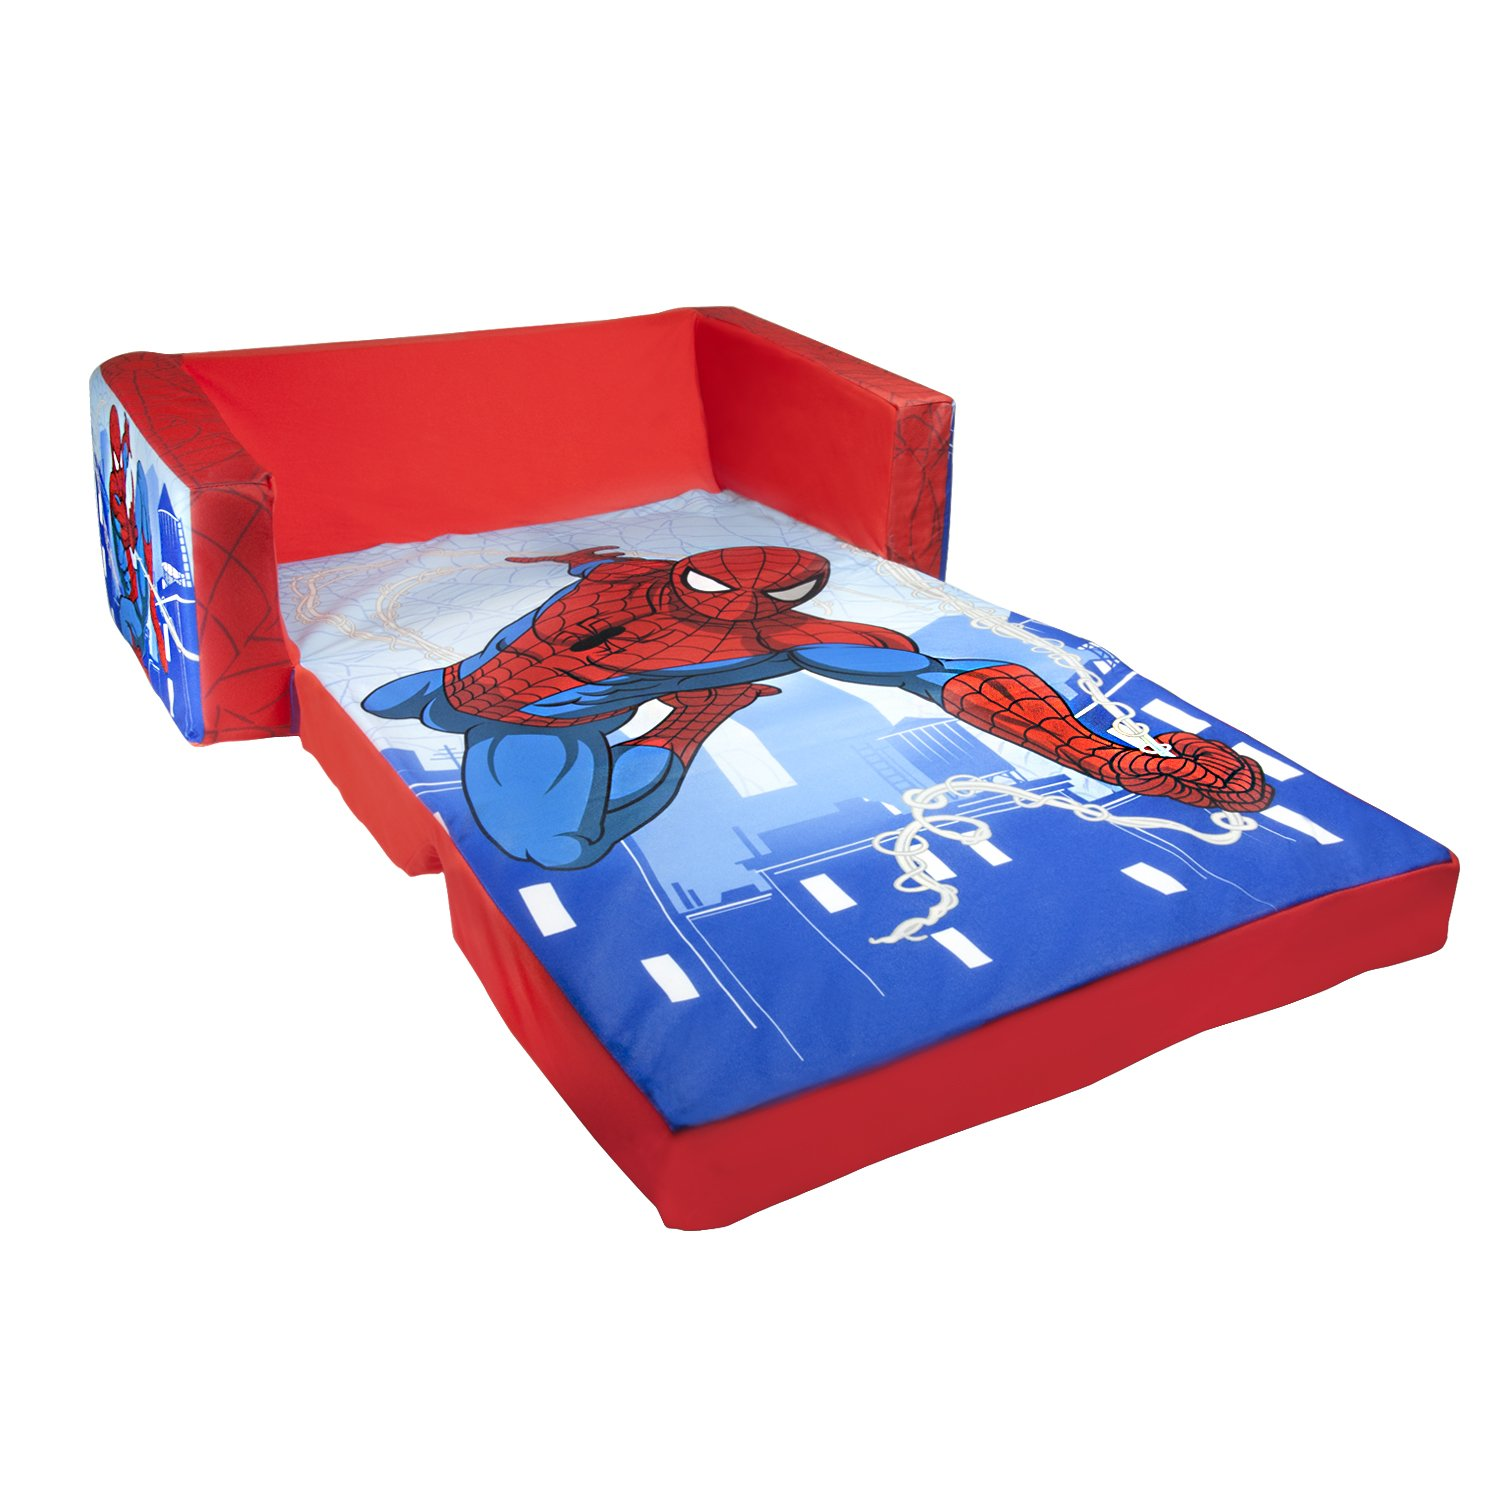 Flip Open Spiderman Sofa Kids Room Bed Boys Toddler Bedroom Play Superhero